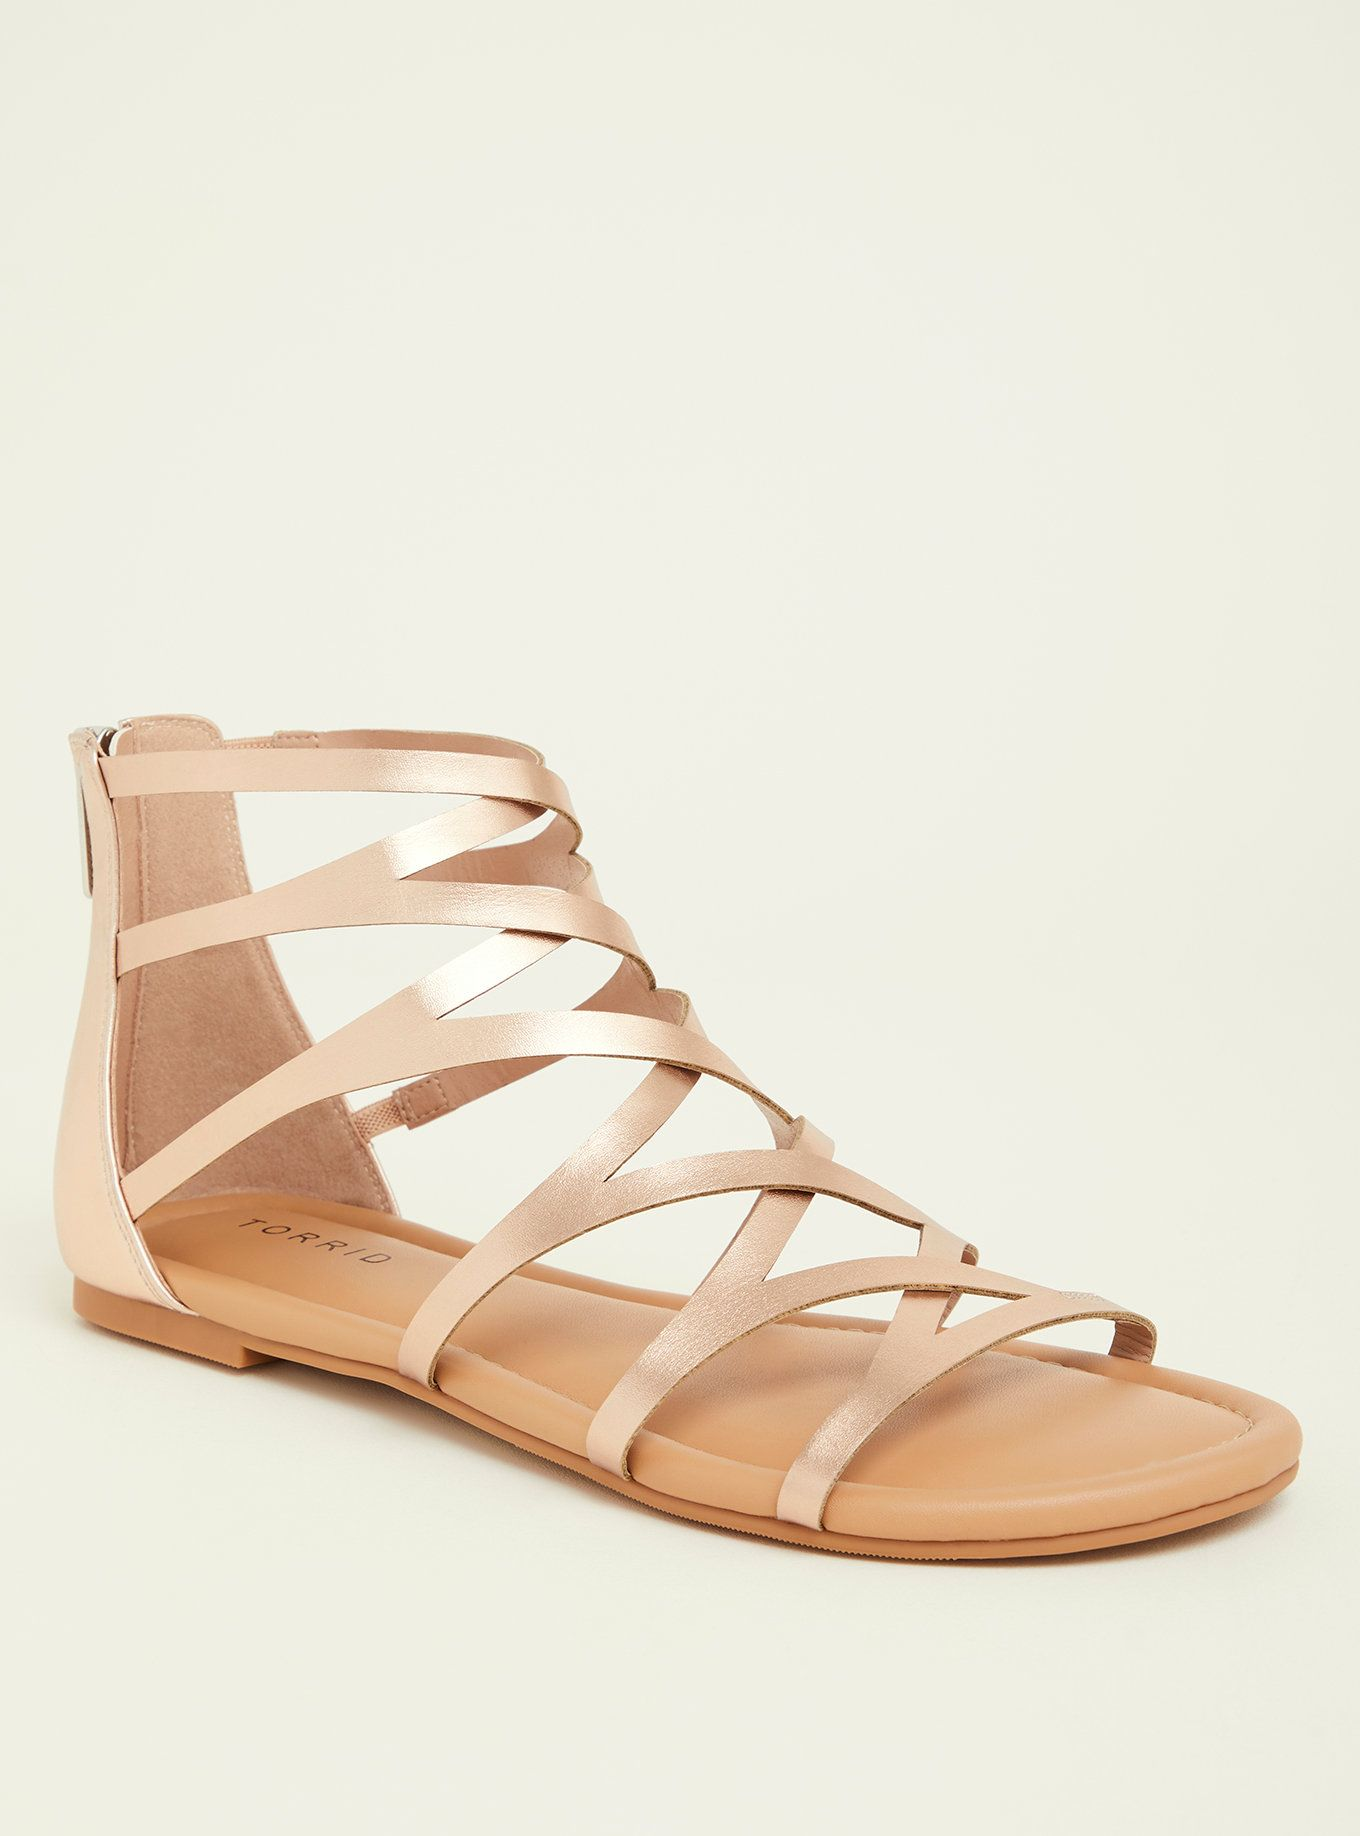 8a86b71bedda Rose Gold Gladiator Sandal (Wide Width) in 2019